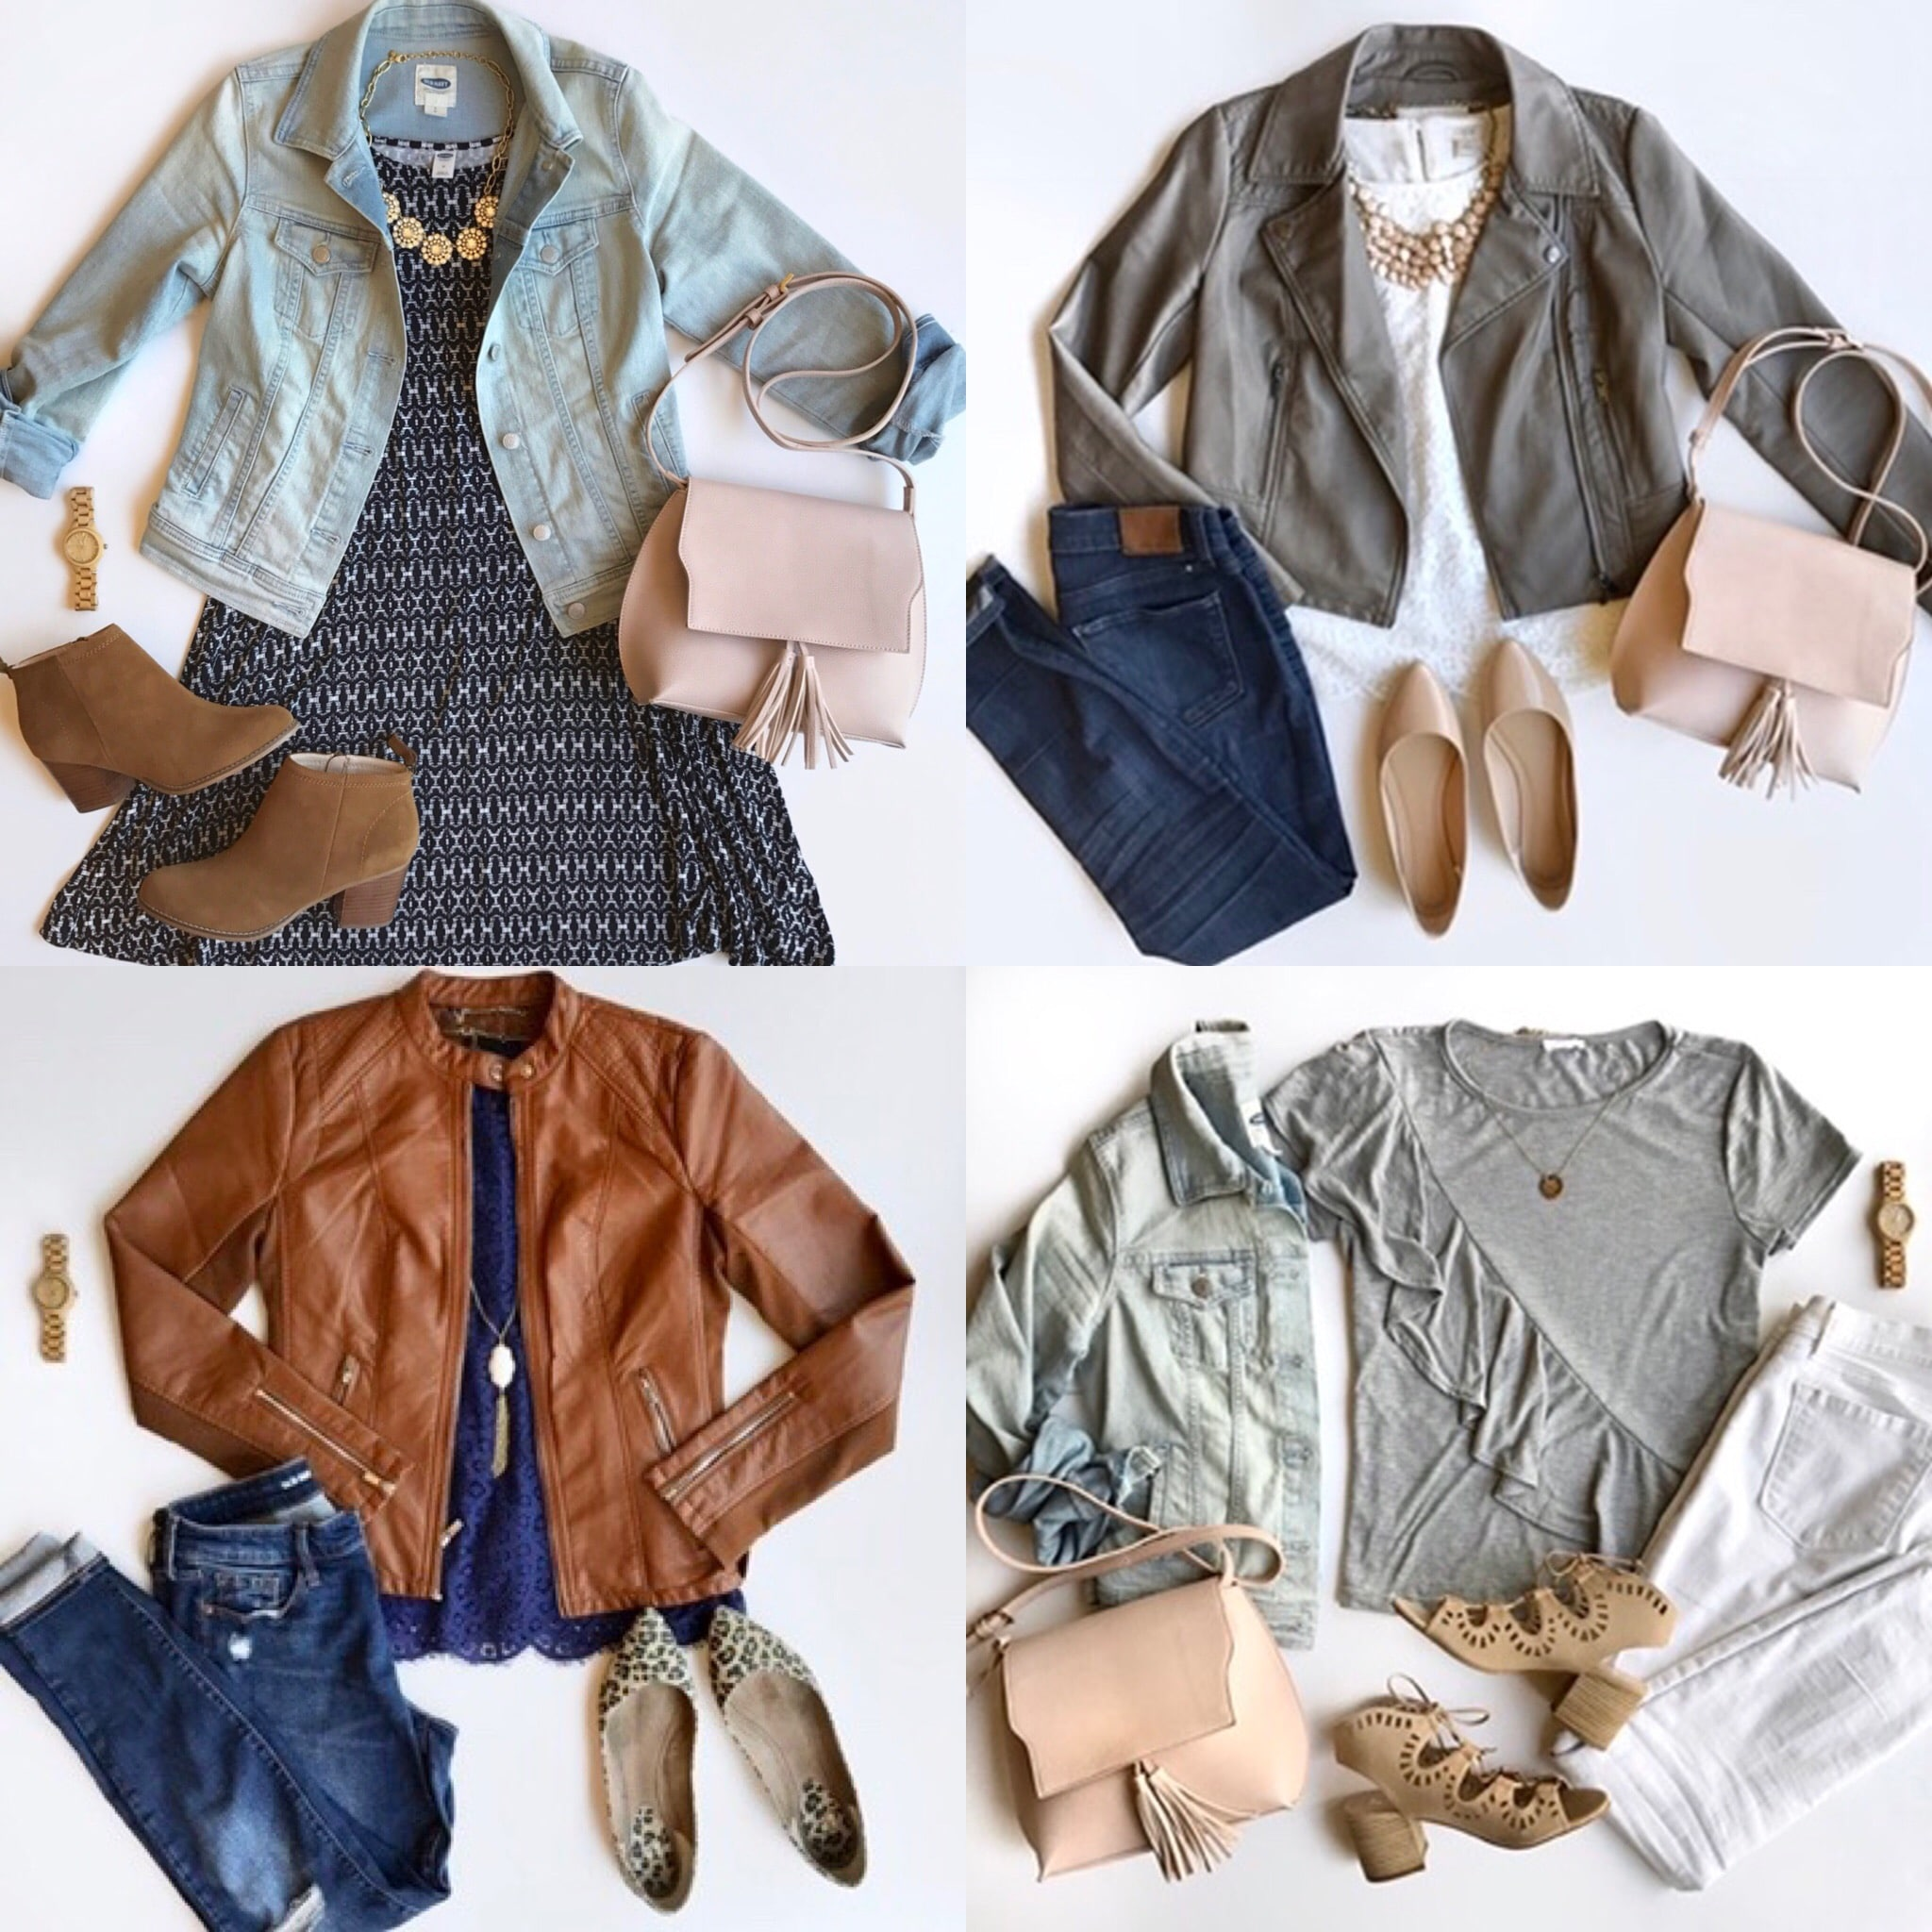 Spring Wardrobe Building Blocks for Dressy Casual Outfits - Denim Jacket and Faux Leather Moto Jackets